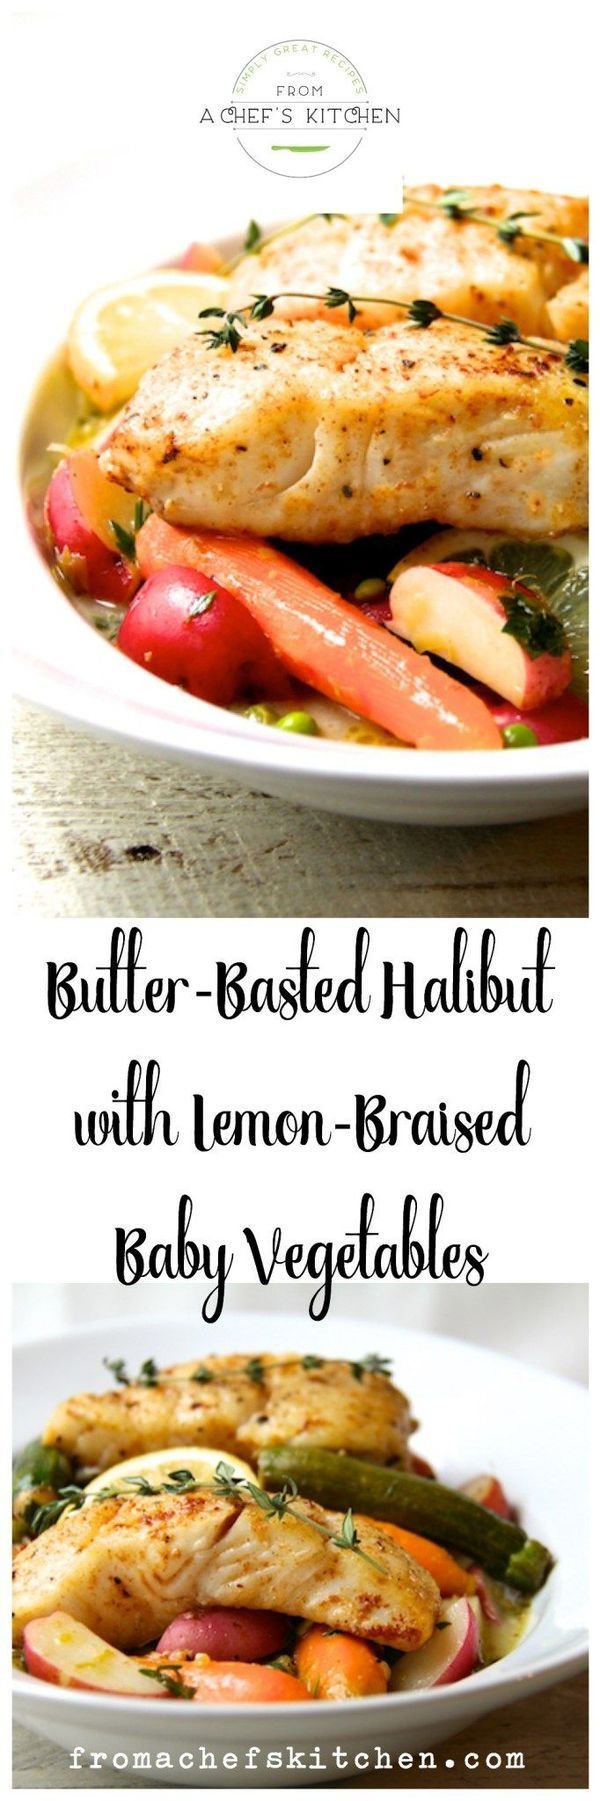 Perfect for spring or just for the halibut! Butter-Basted Halibut with Lemon-Braised Baby Vegetables